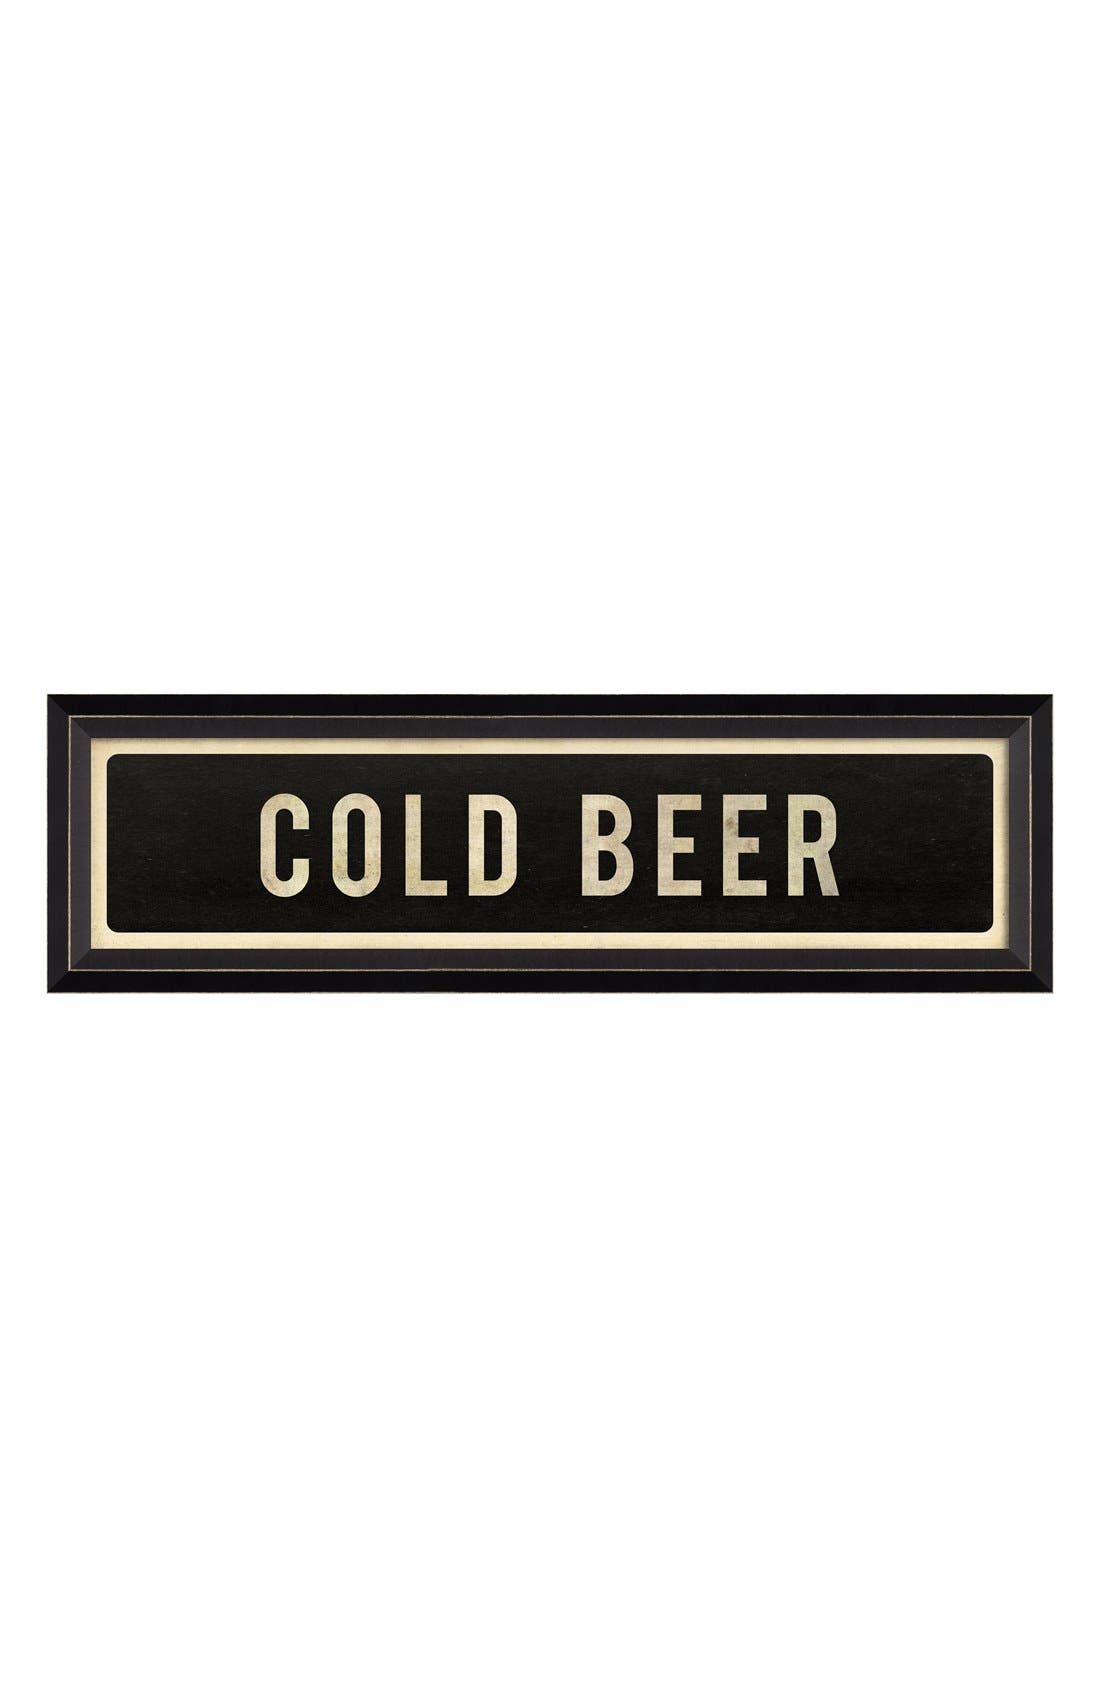 Main Image - Spicher and Company 'Cold Beer' Vintage Look Street Sign Artwork